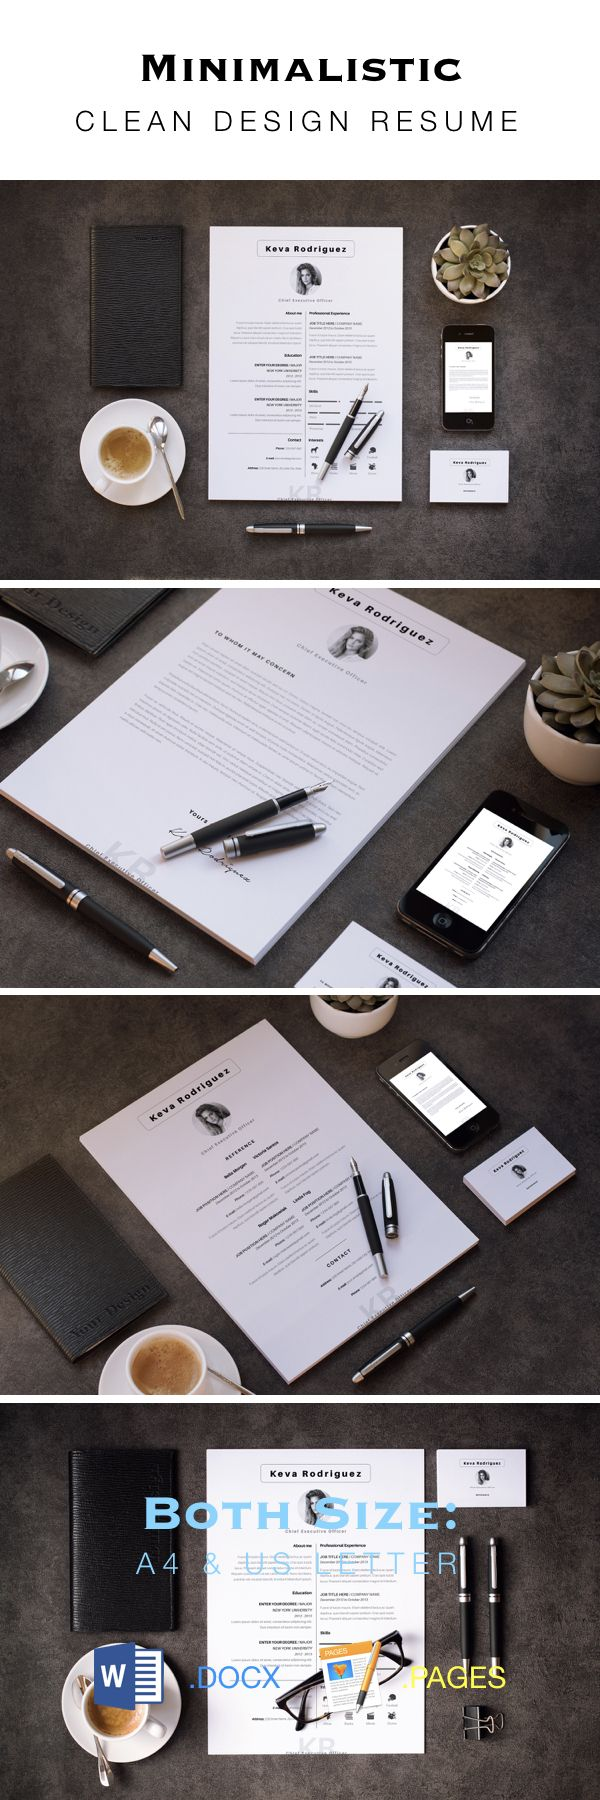 231 best creative resume by cvdesign images on pinterest